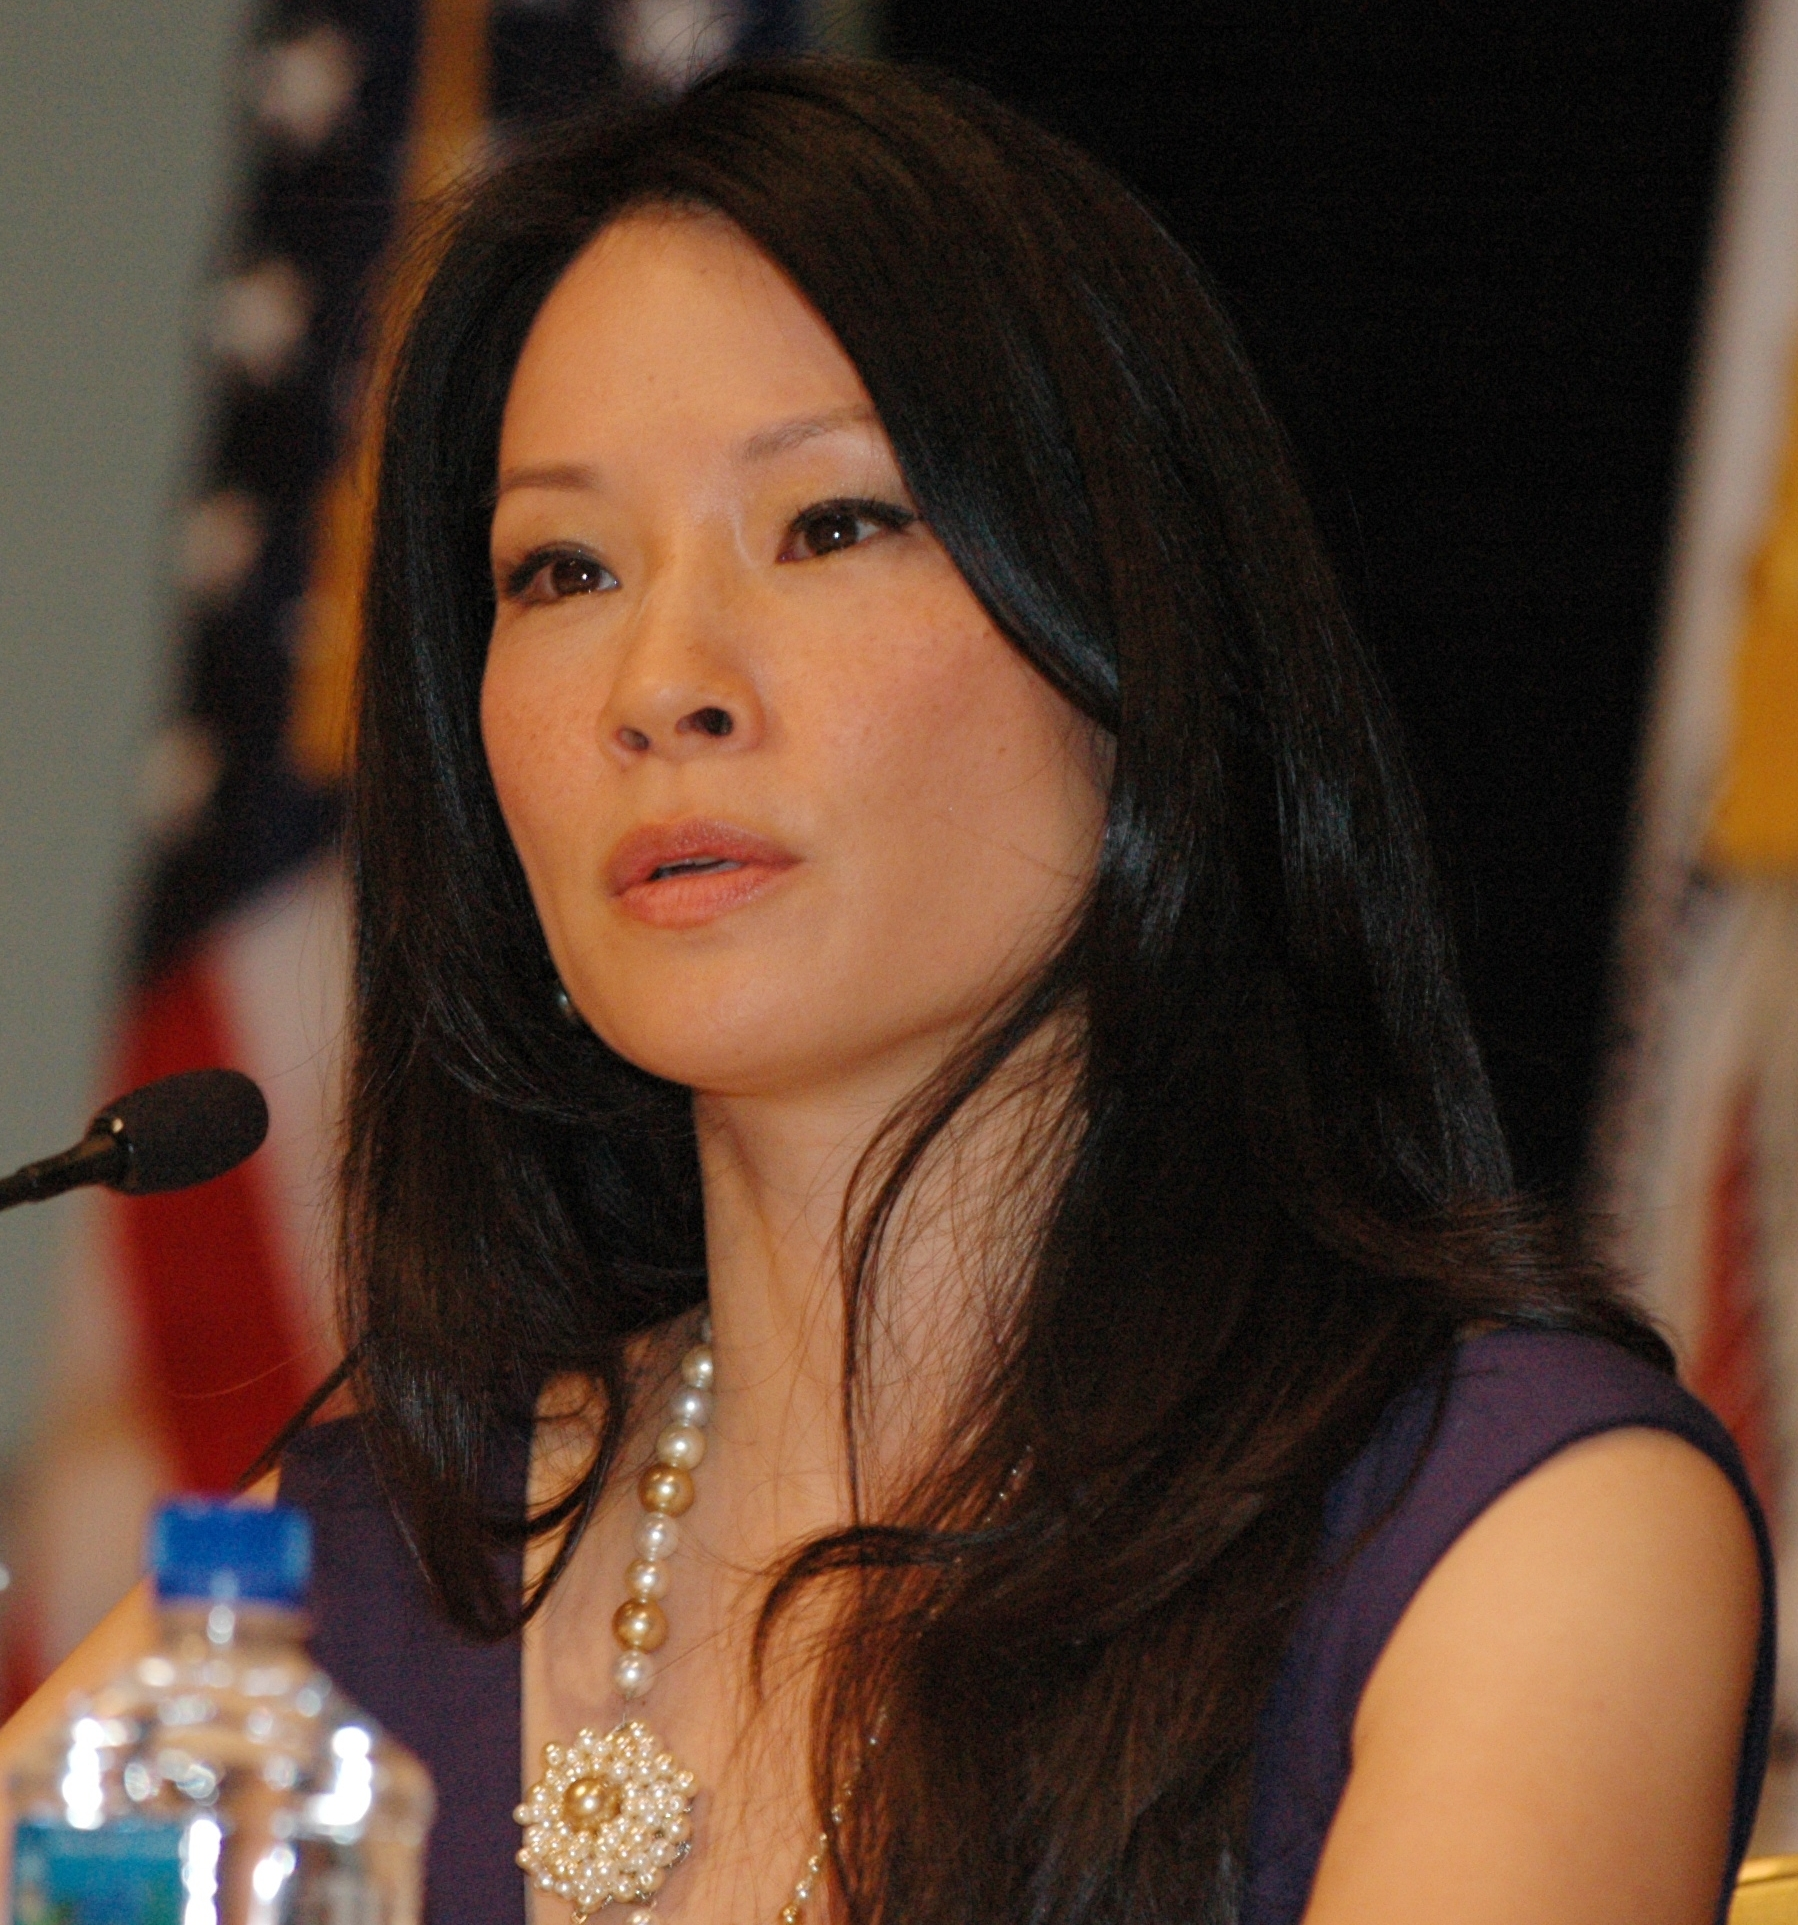 Lucy Liu (Image from WIkipedia)